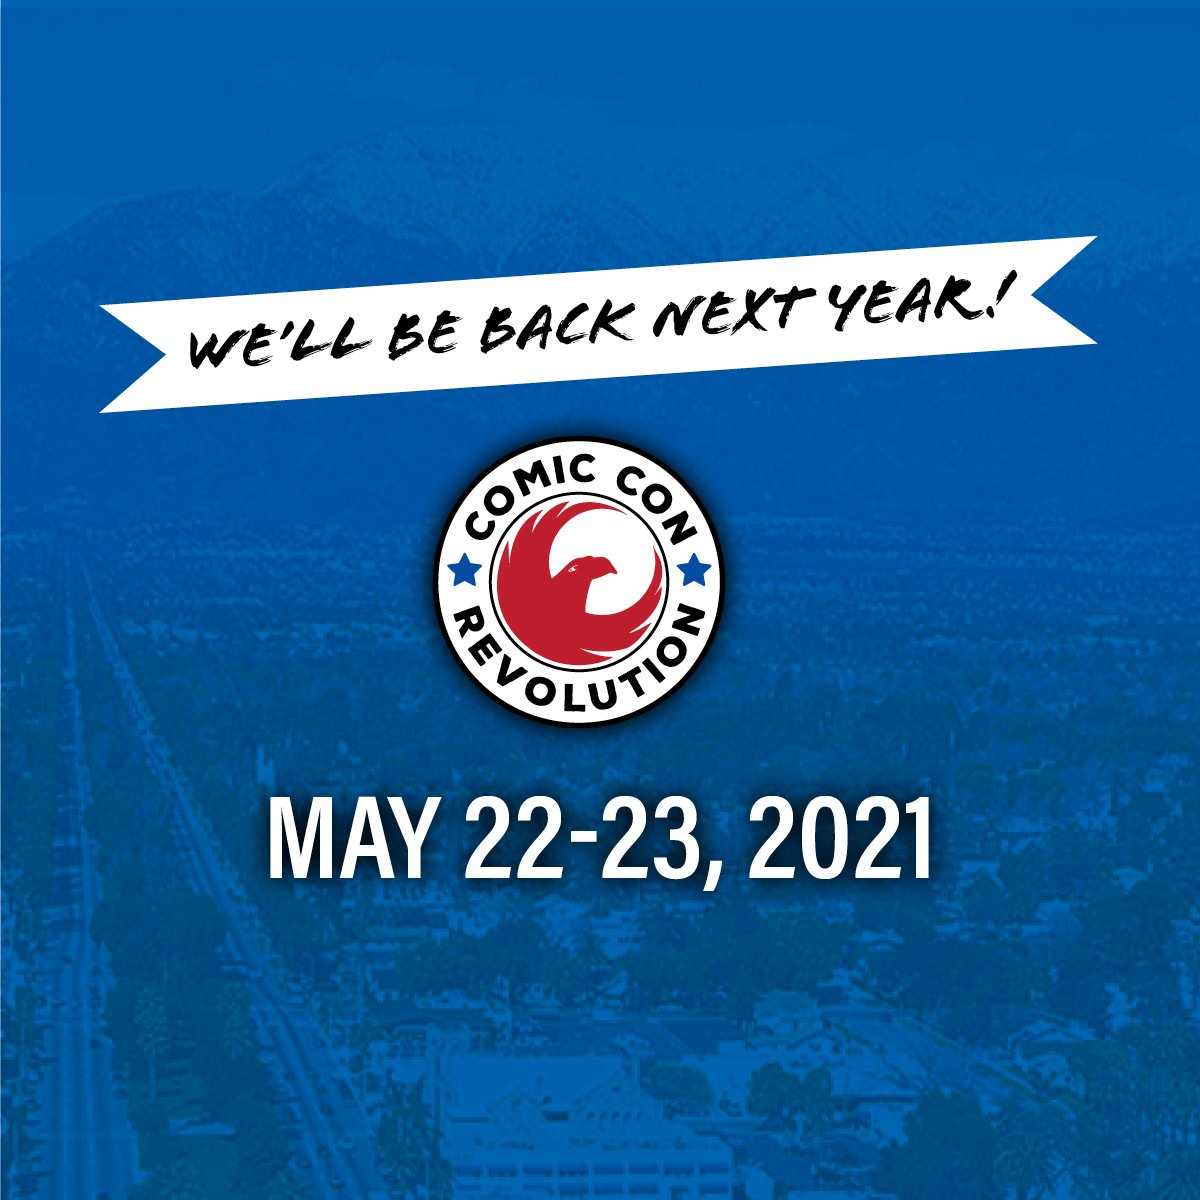 Comic Con Revolution 2020 has been postponed until May 22 & 23, 2021. Please see our website for more info.  https://t.co/h3xtqIUX4c https://t.co/oeO2DdbBPn